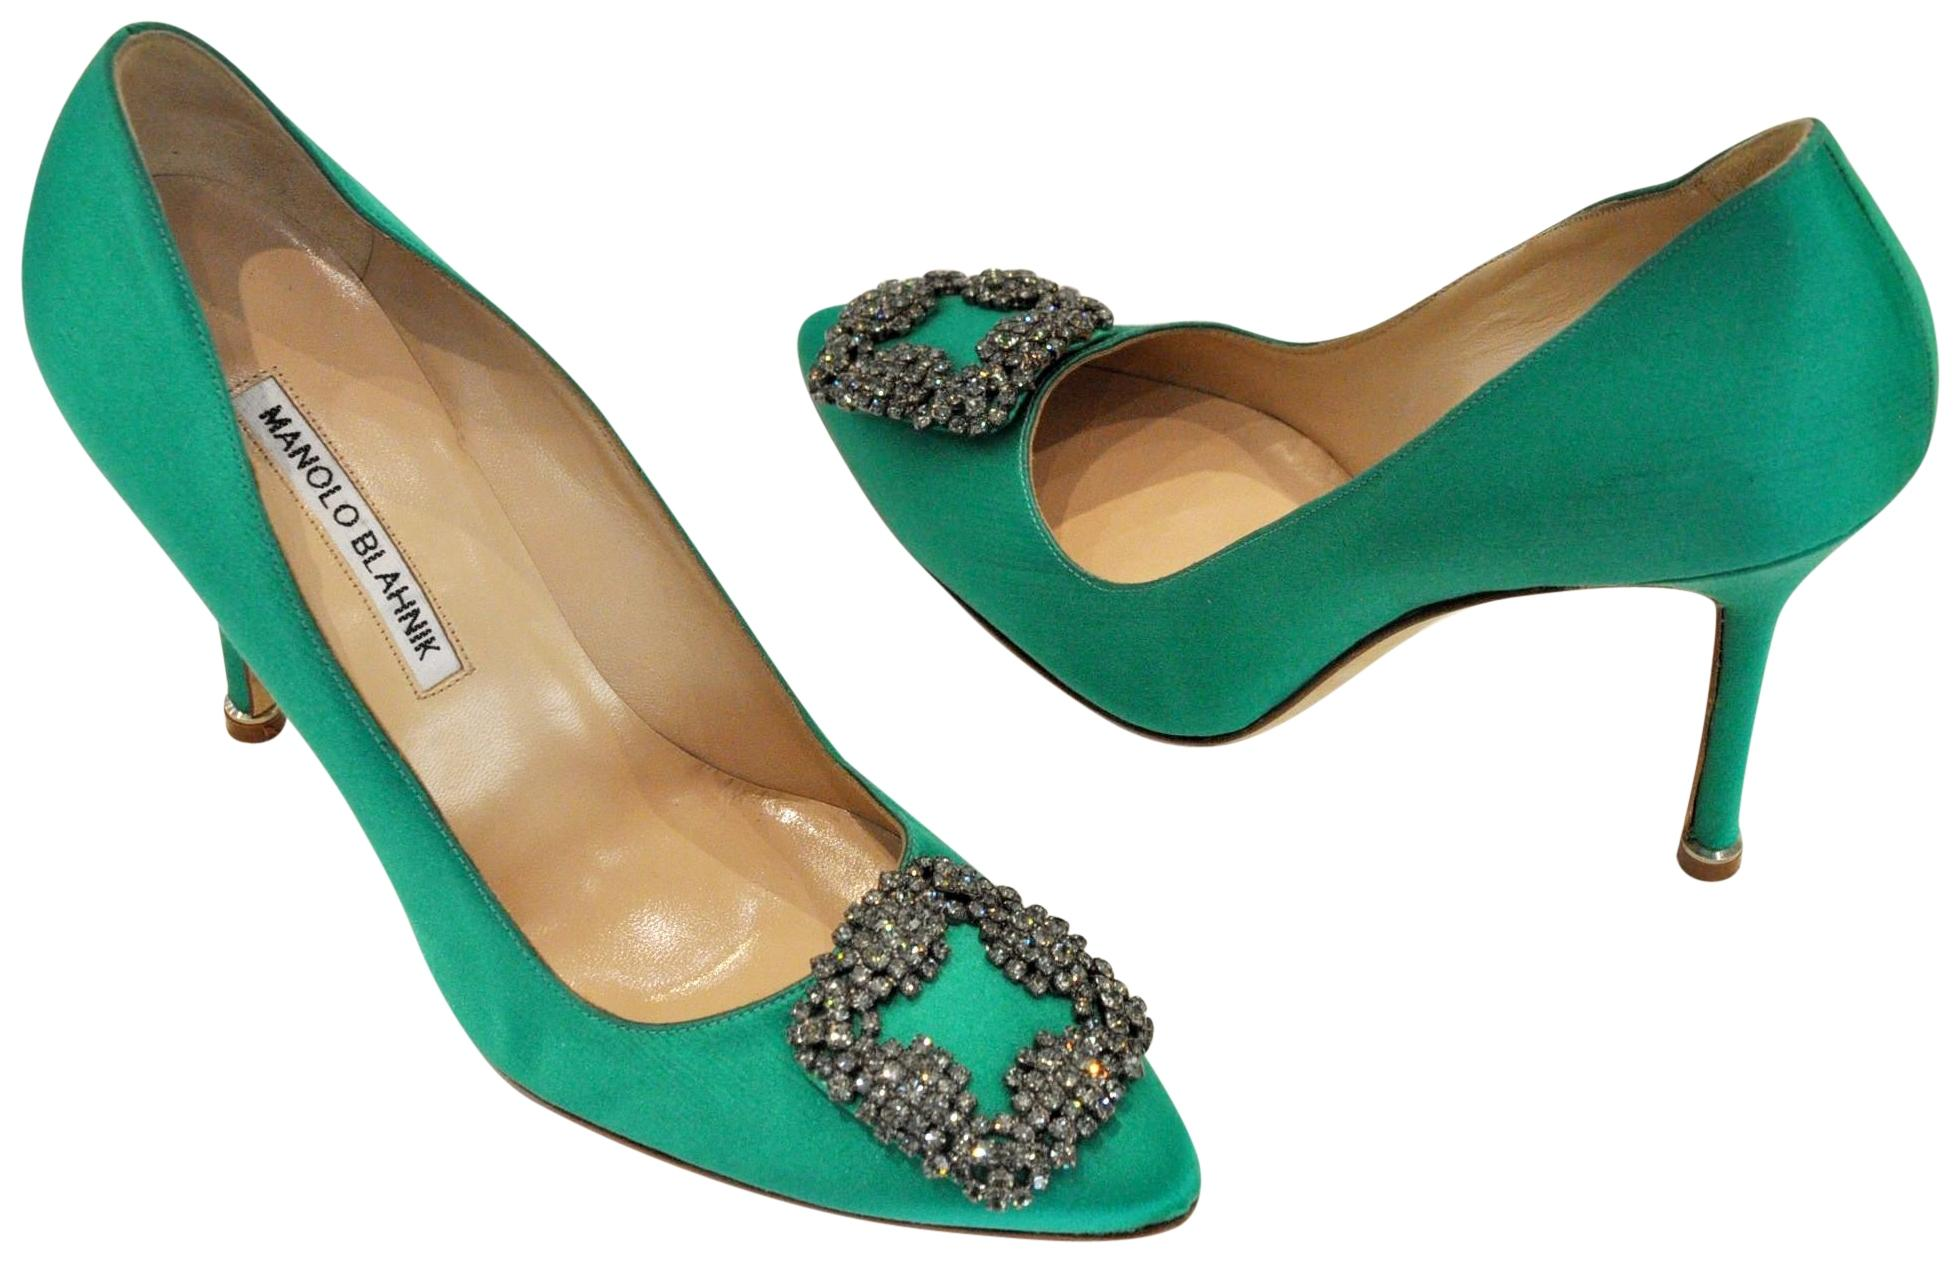 a18a1be3c75 Manolo Blahnik Green Hangisi Hangisi Hangisi Pointed-toe Pumps Size EU 38  (Approx. US 8) Regular (M